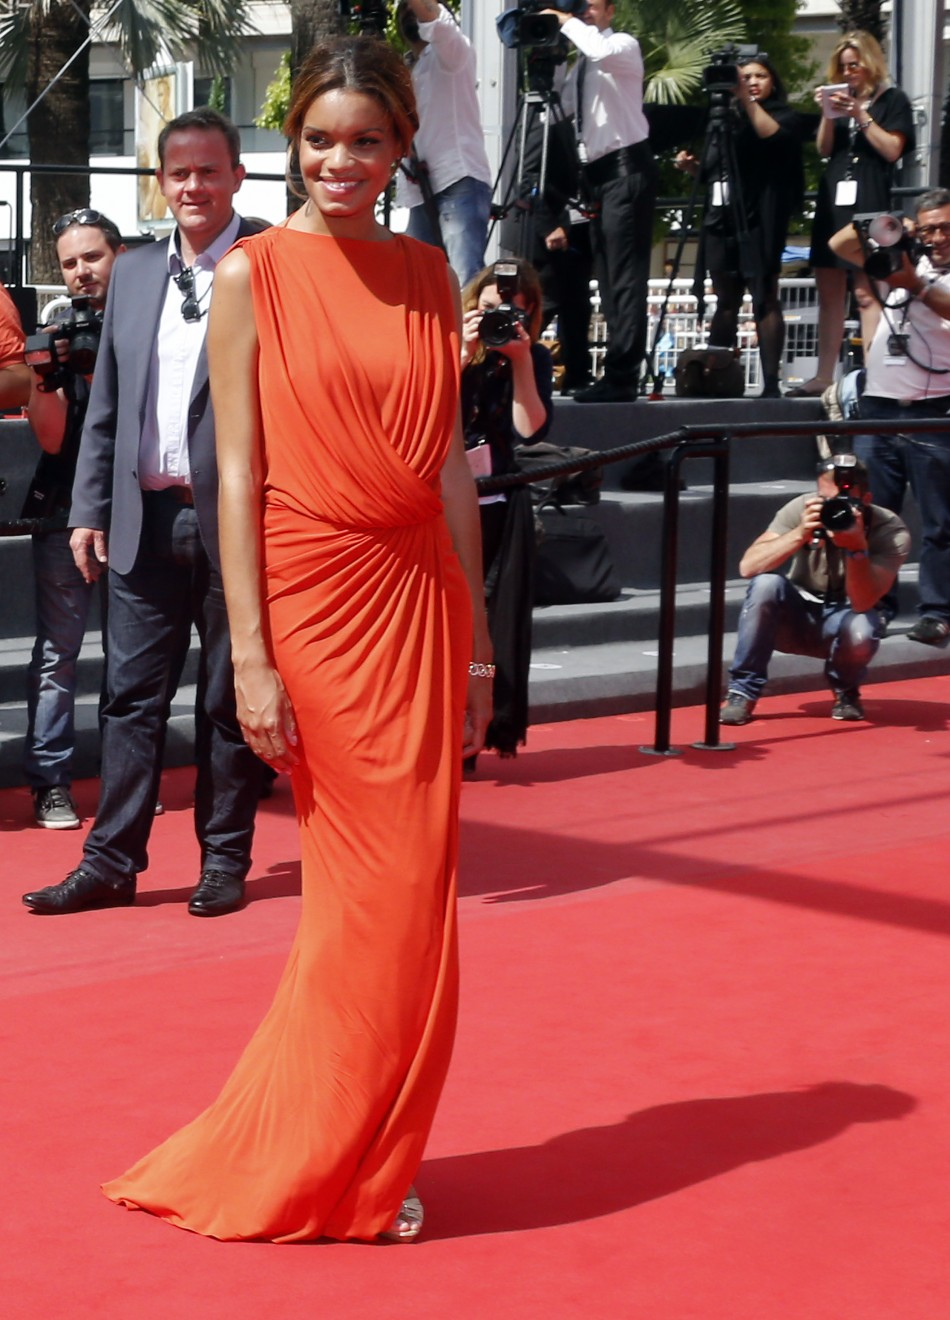 Cast member Anais Monory poses on the red carpet as she arrives for the screening of the film Grigris in competition during the 66th Cannes Film Festival in Cannes May 22, 2013.